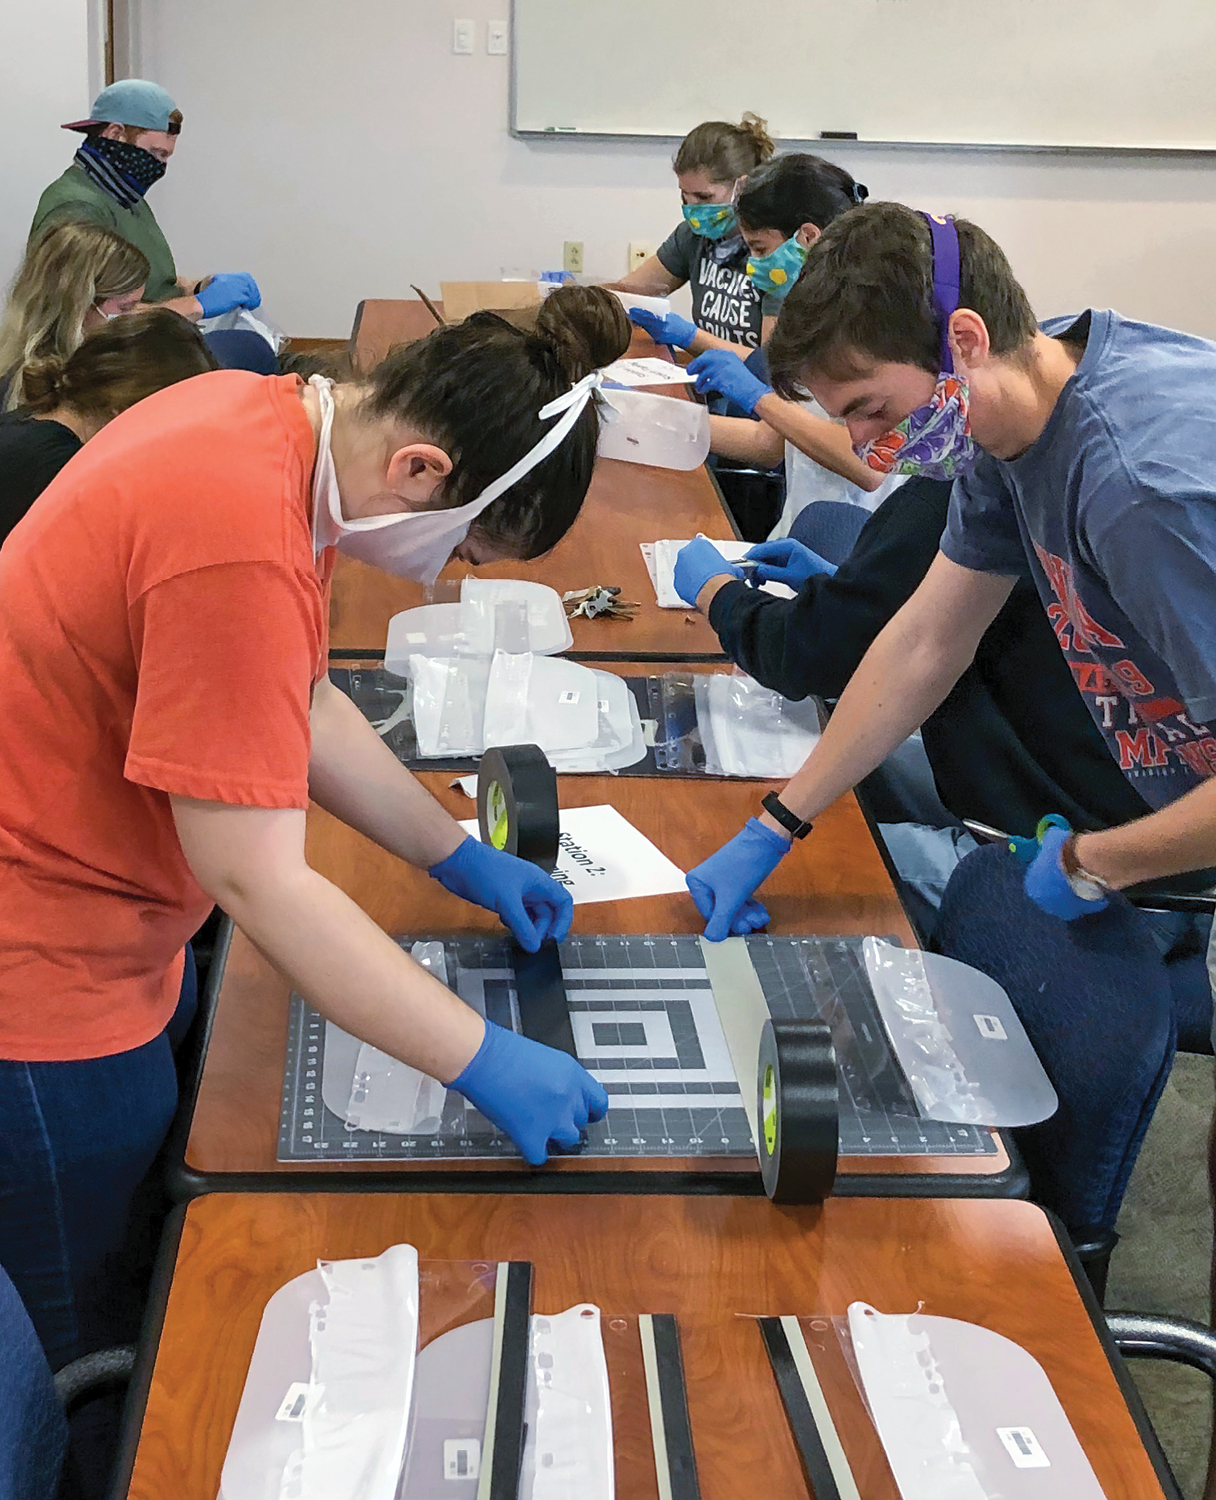 A female and male student in the foreground wear face covering and protective gloves as they use duct tape to cover the holes on the plastic coverings used to make the face shields.